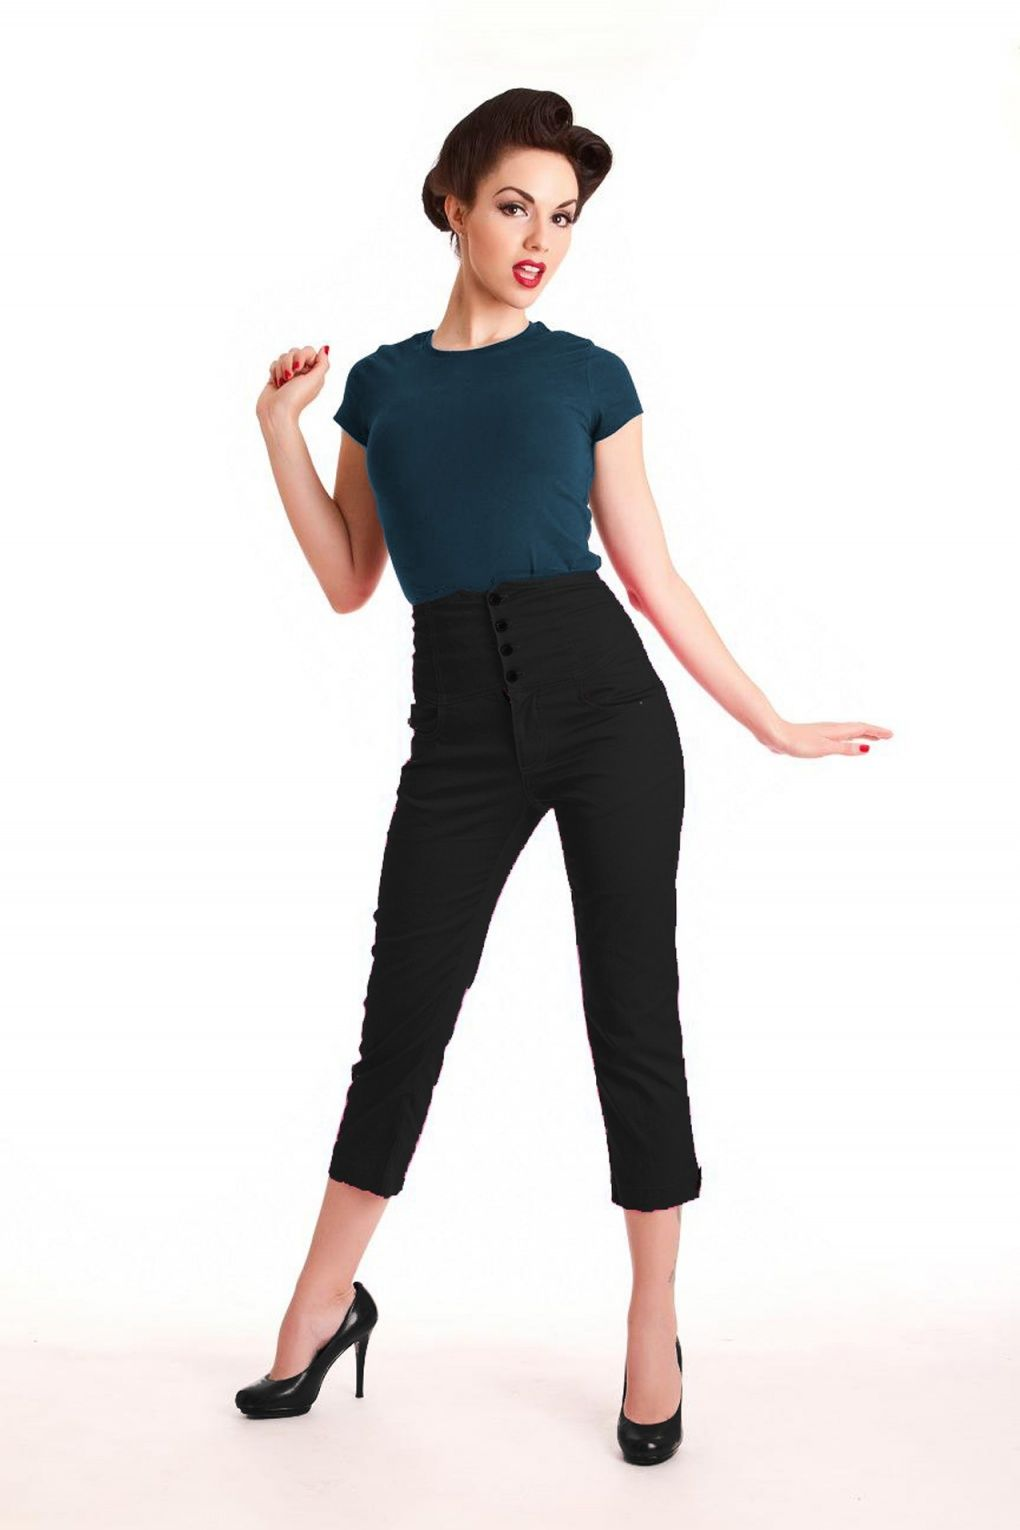 clothing from the 50s topvintage 187 clothing 187 pants